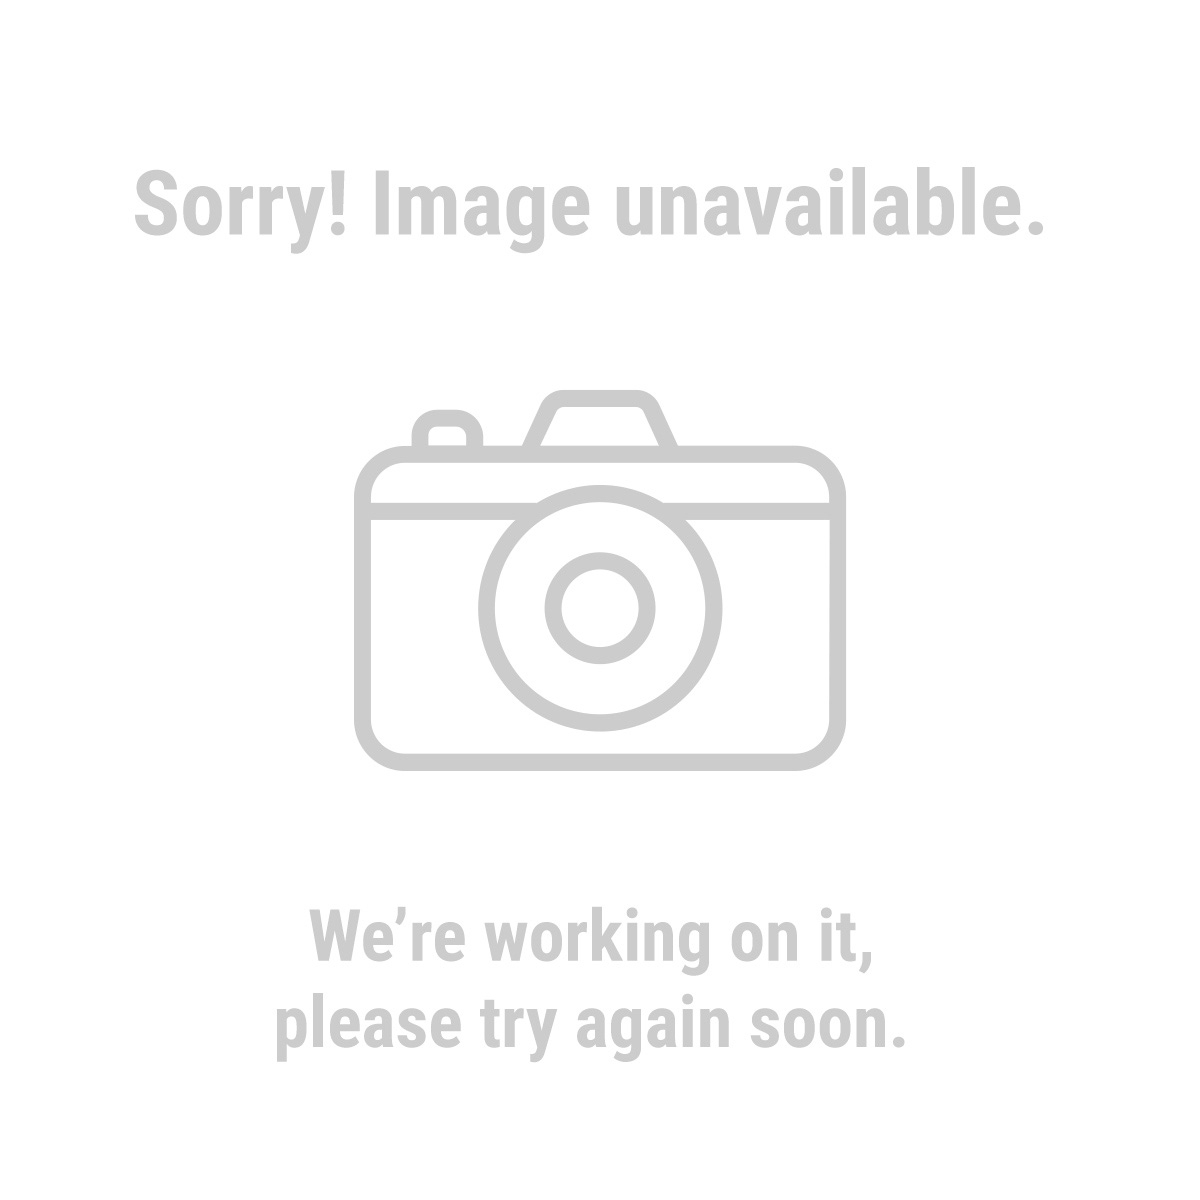 Pacific Hydrostar 68486 1/4 Horsepower Clear Water Pump with Float Switch